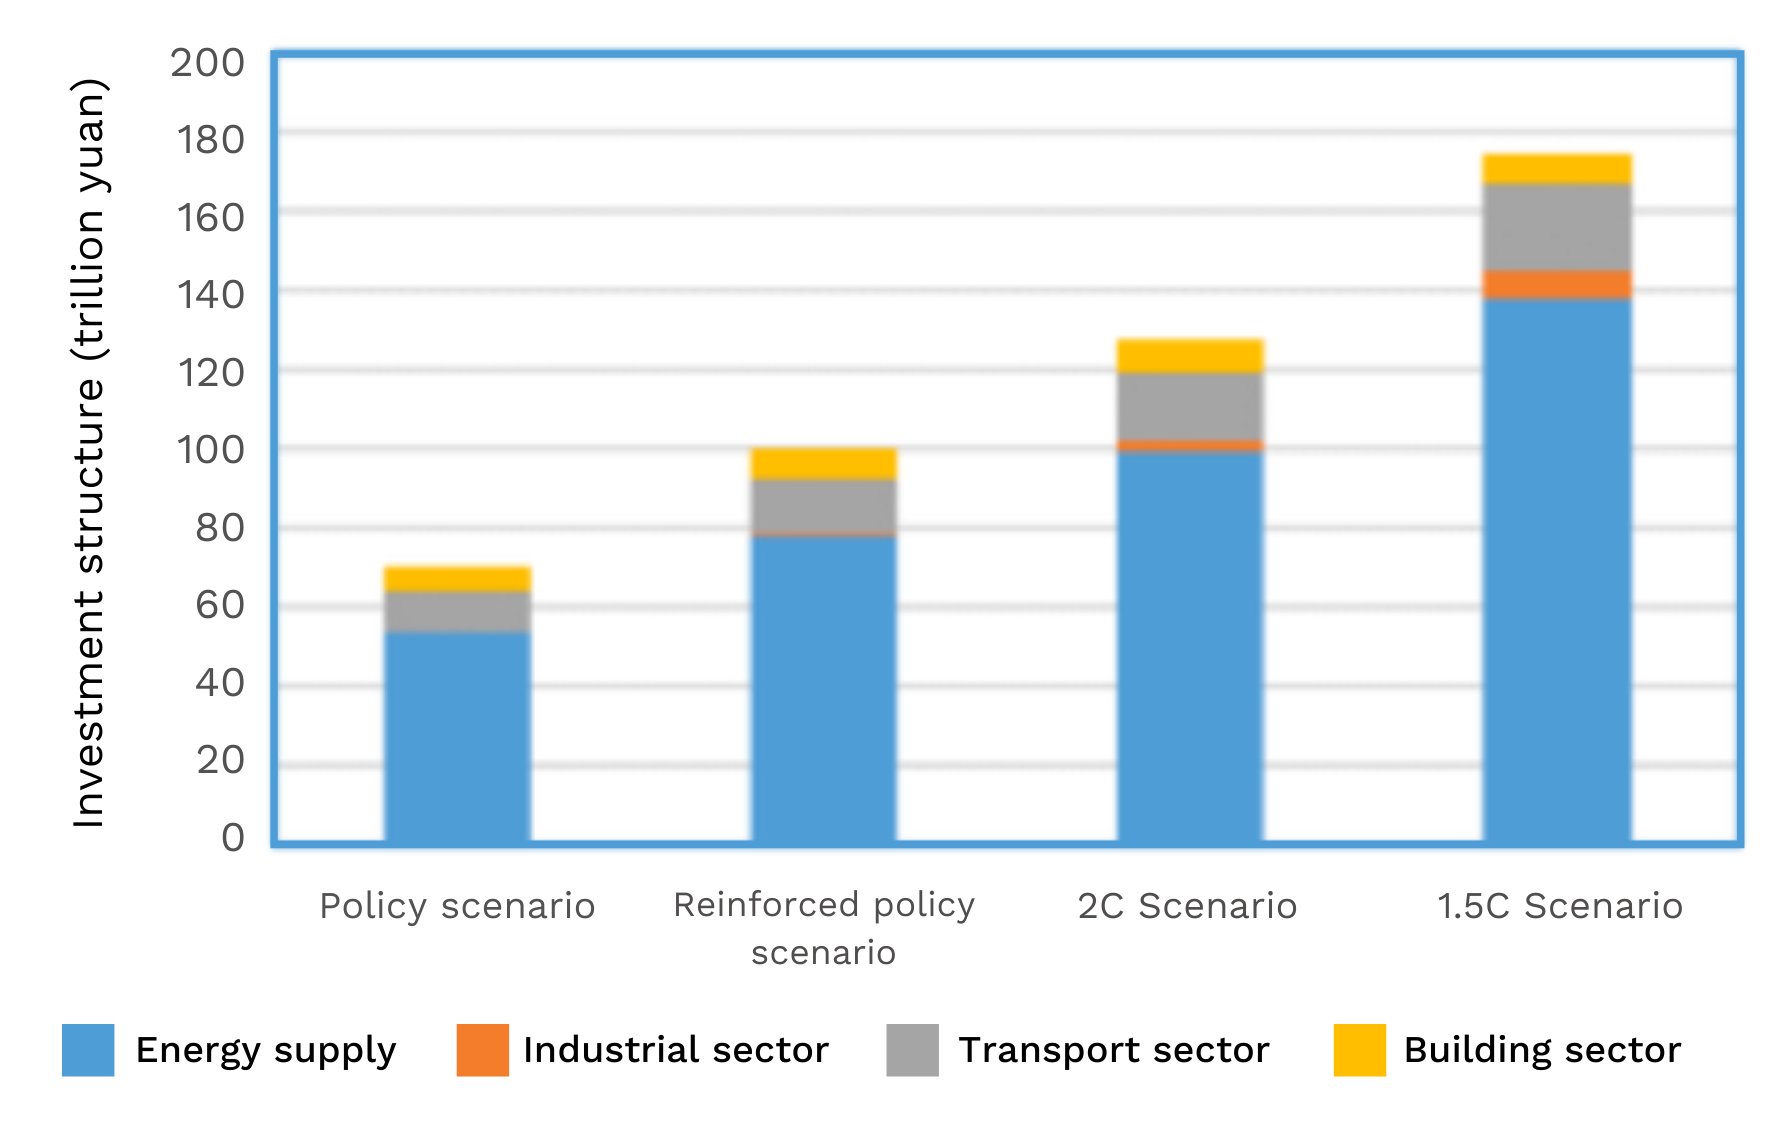 Investments in China's energy infrastructure 2020-2050 under different scenarios (Source: Institute of Climate Change and Sustainable Development, Tsinghua University)